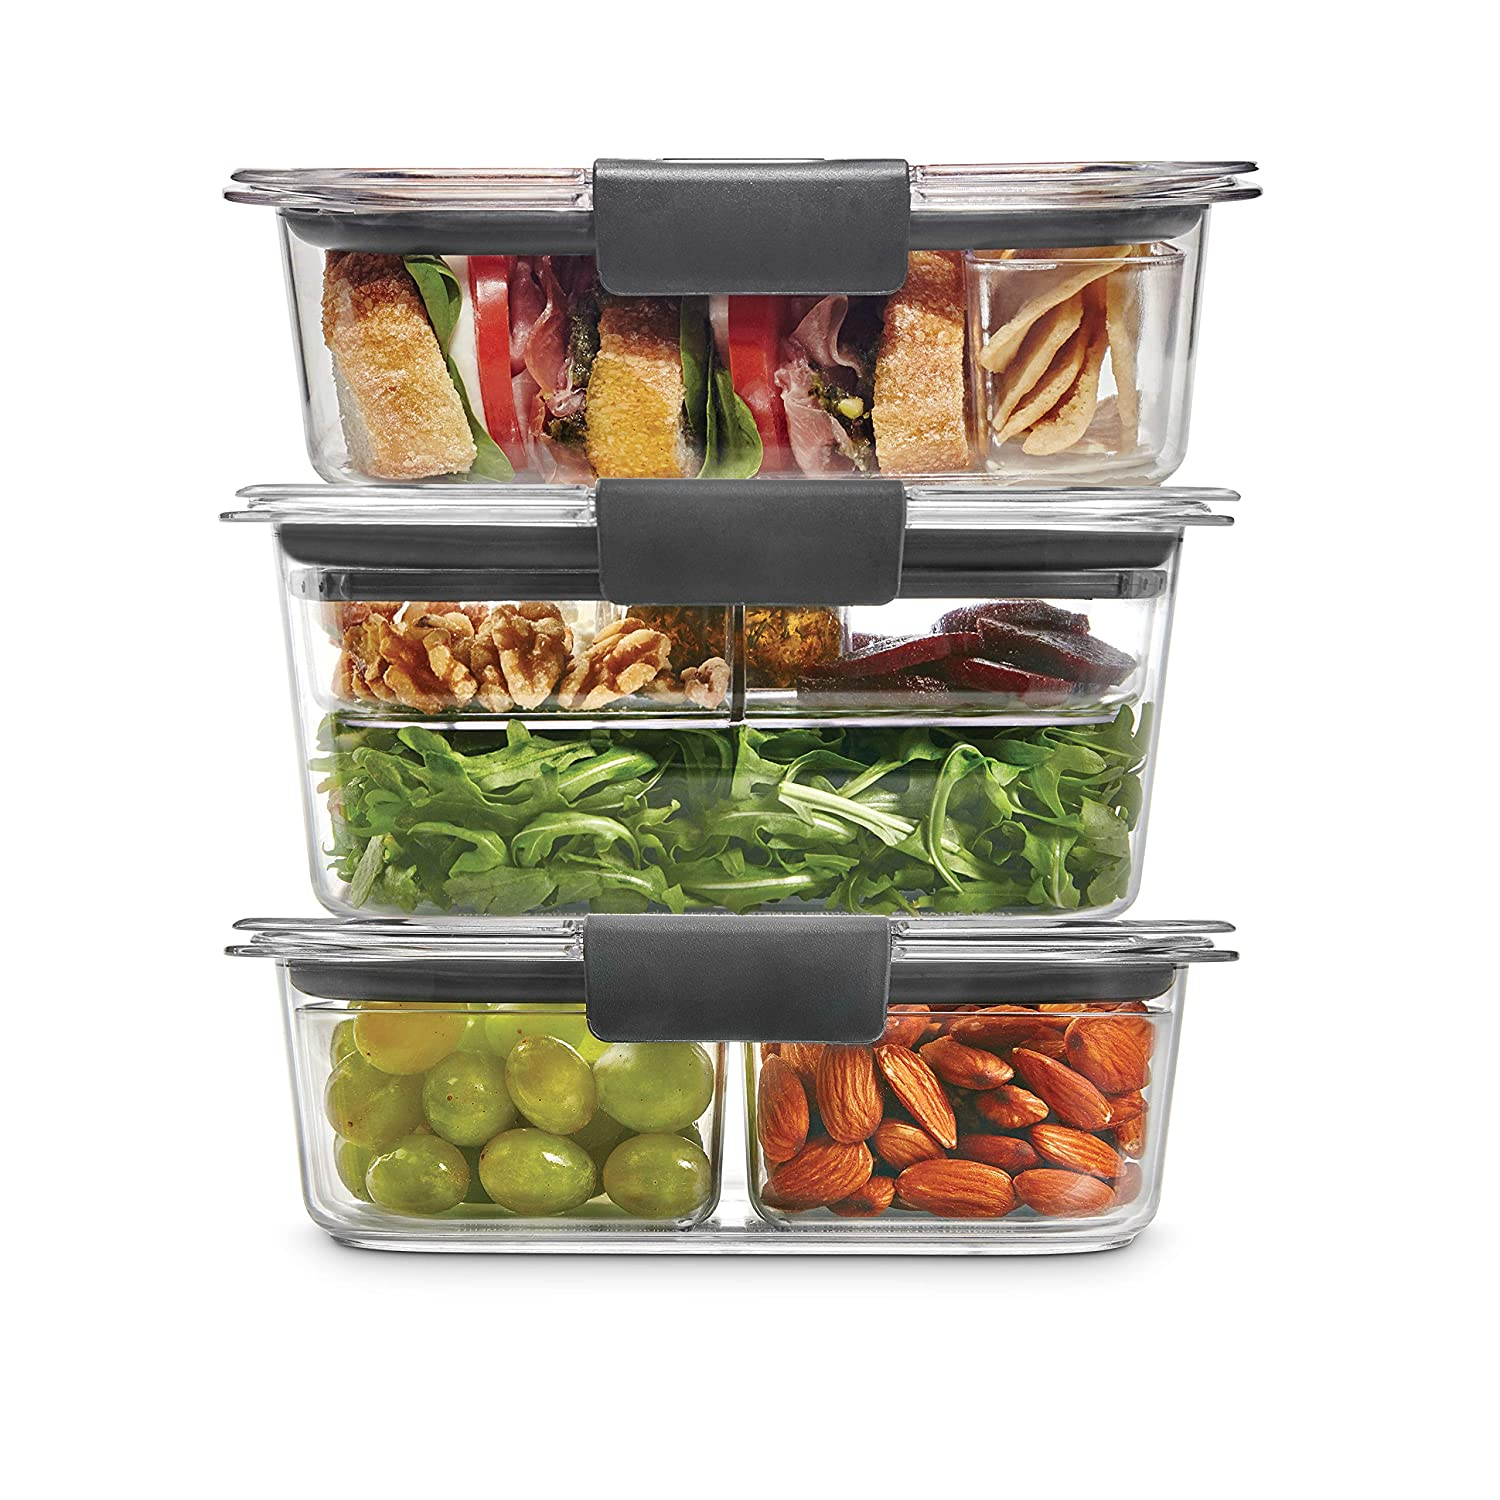 Rubbermaid 2108371 Leak-Proof Brilliance Food Storage 12-Piece Plastic Containers with Lids | Bento Box Style Sandwich and Salad Lunch Kit, Clear